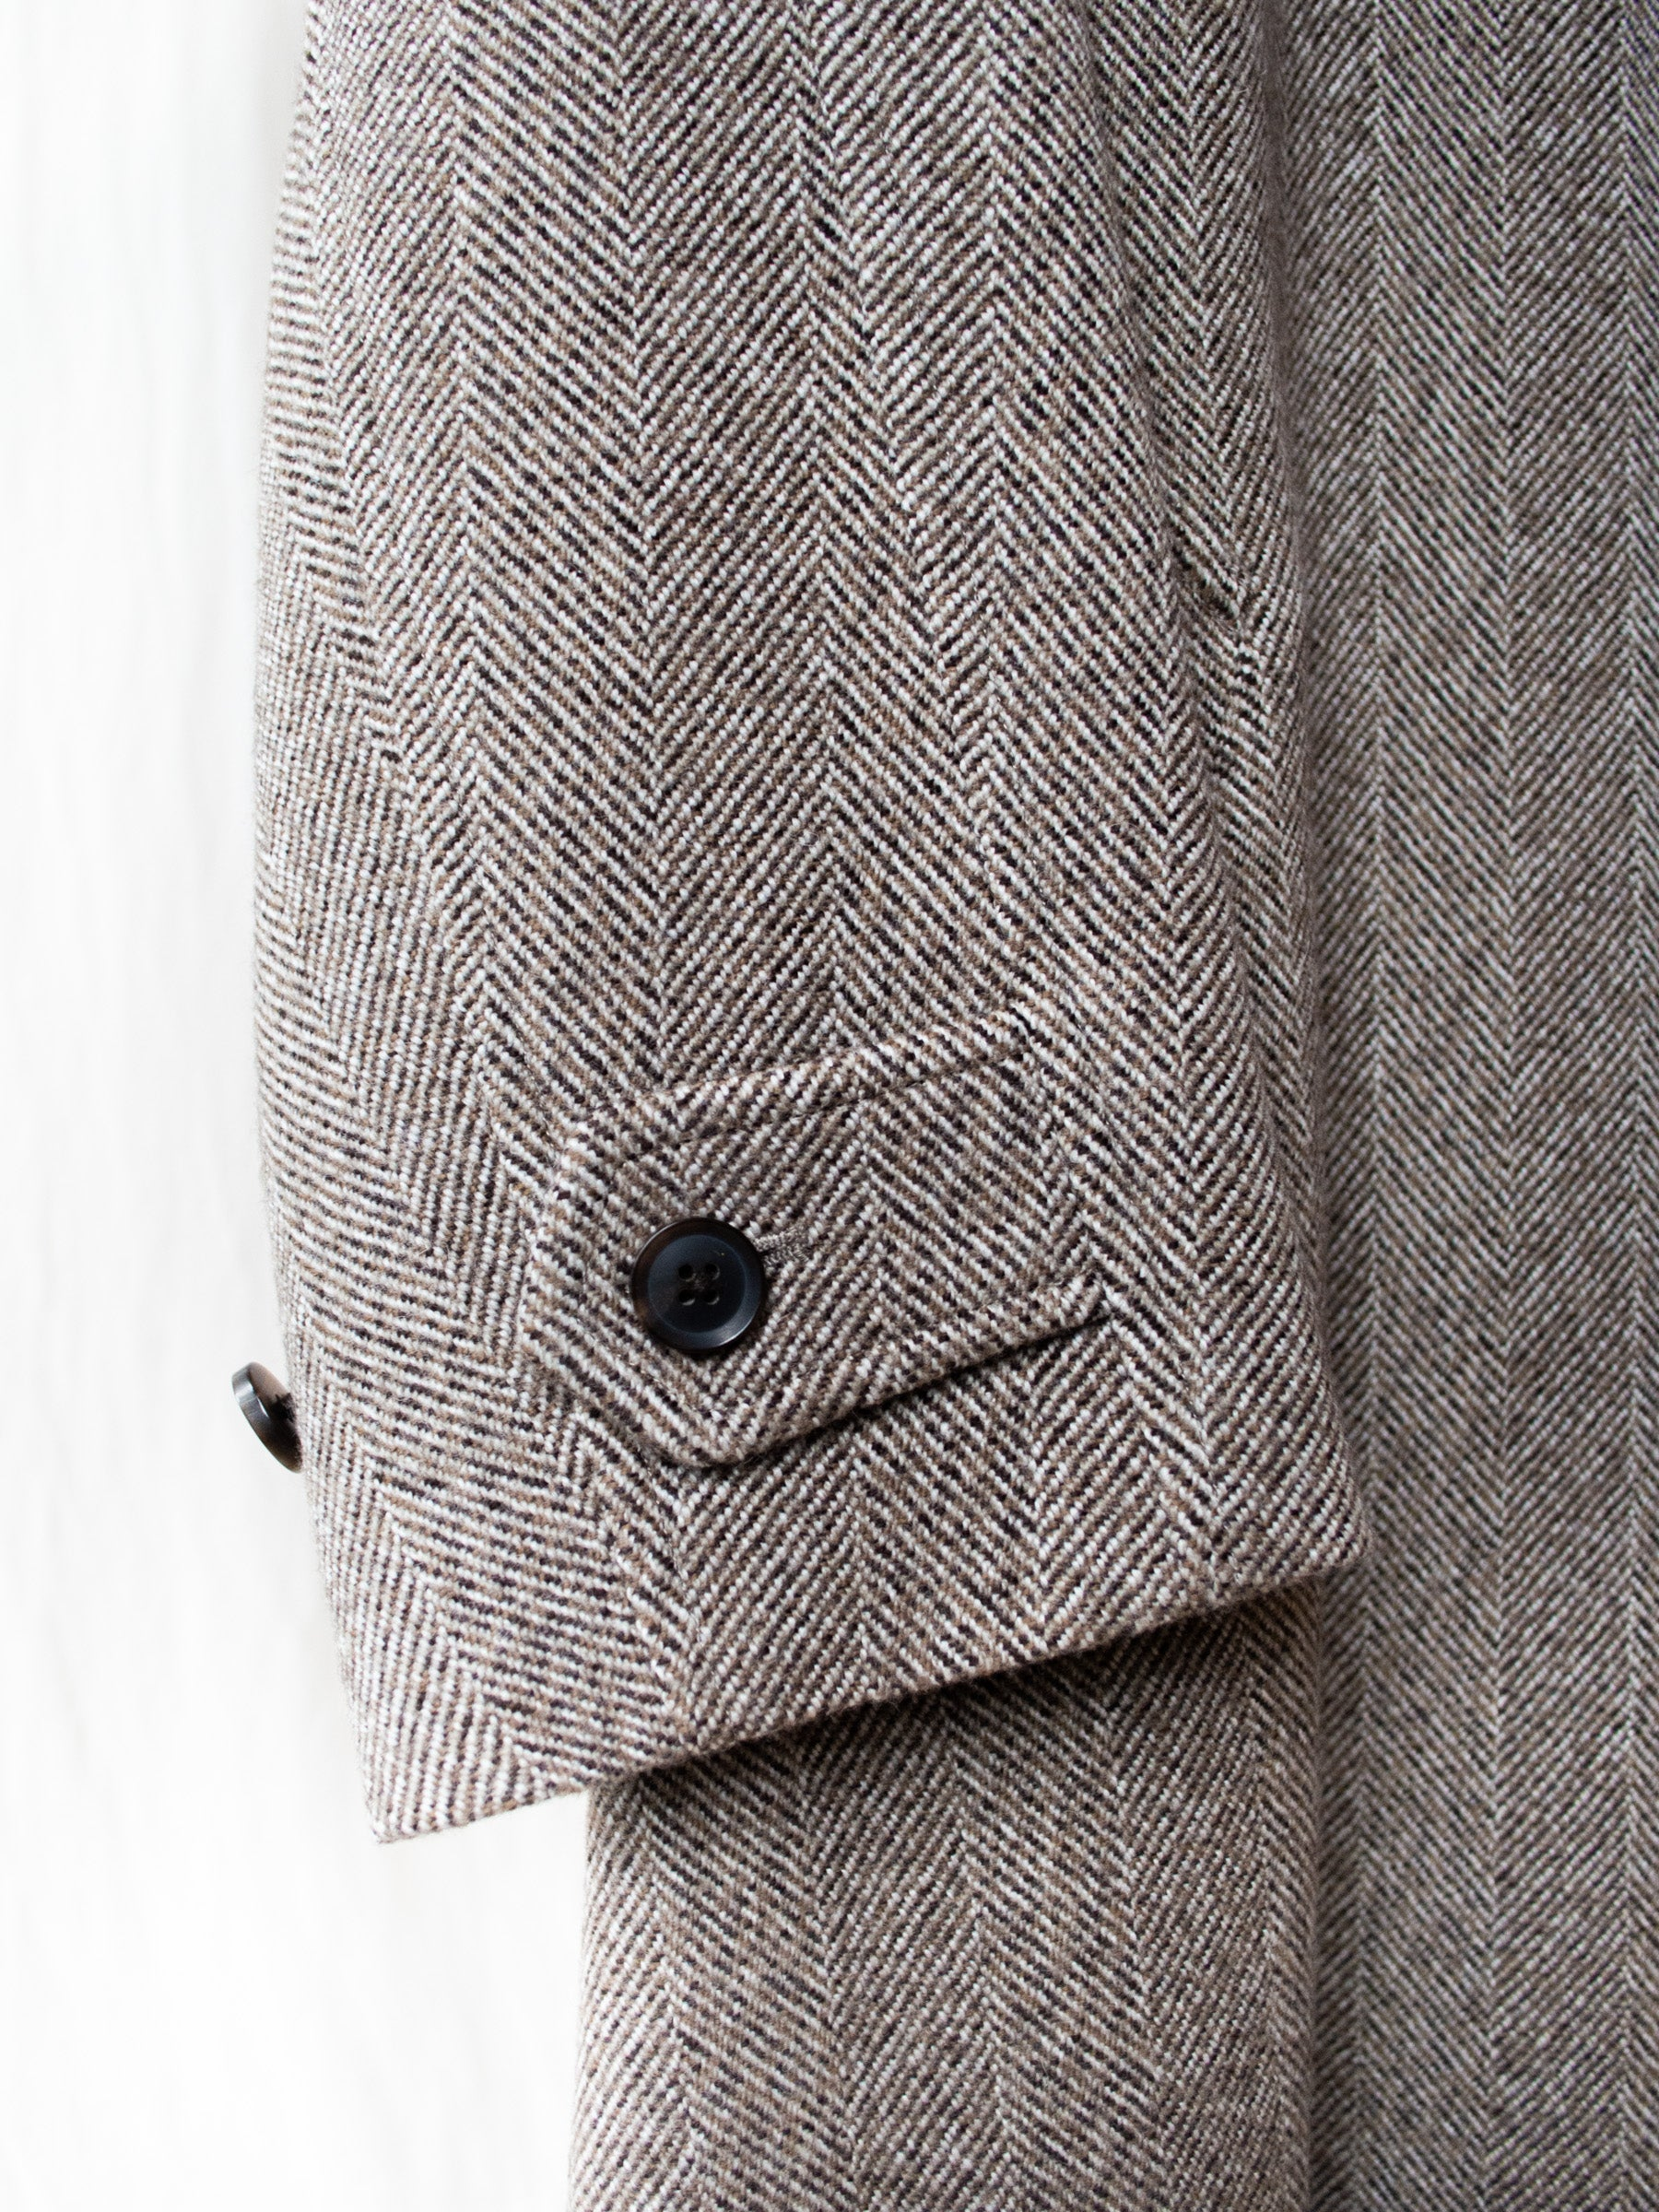 Arles Wool Tweed Balmacaan Coat